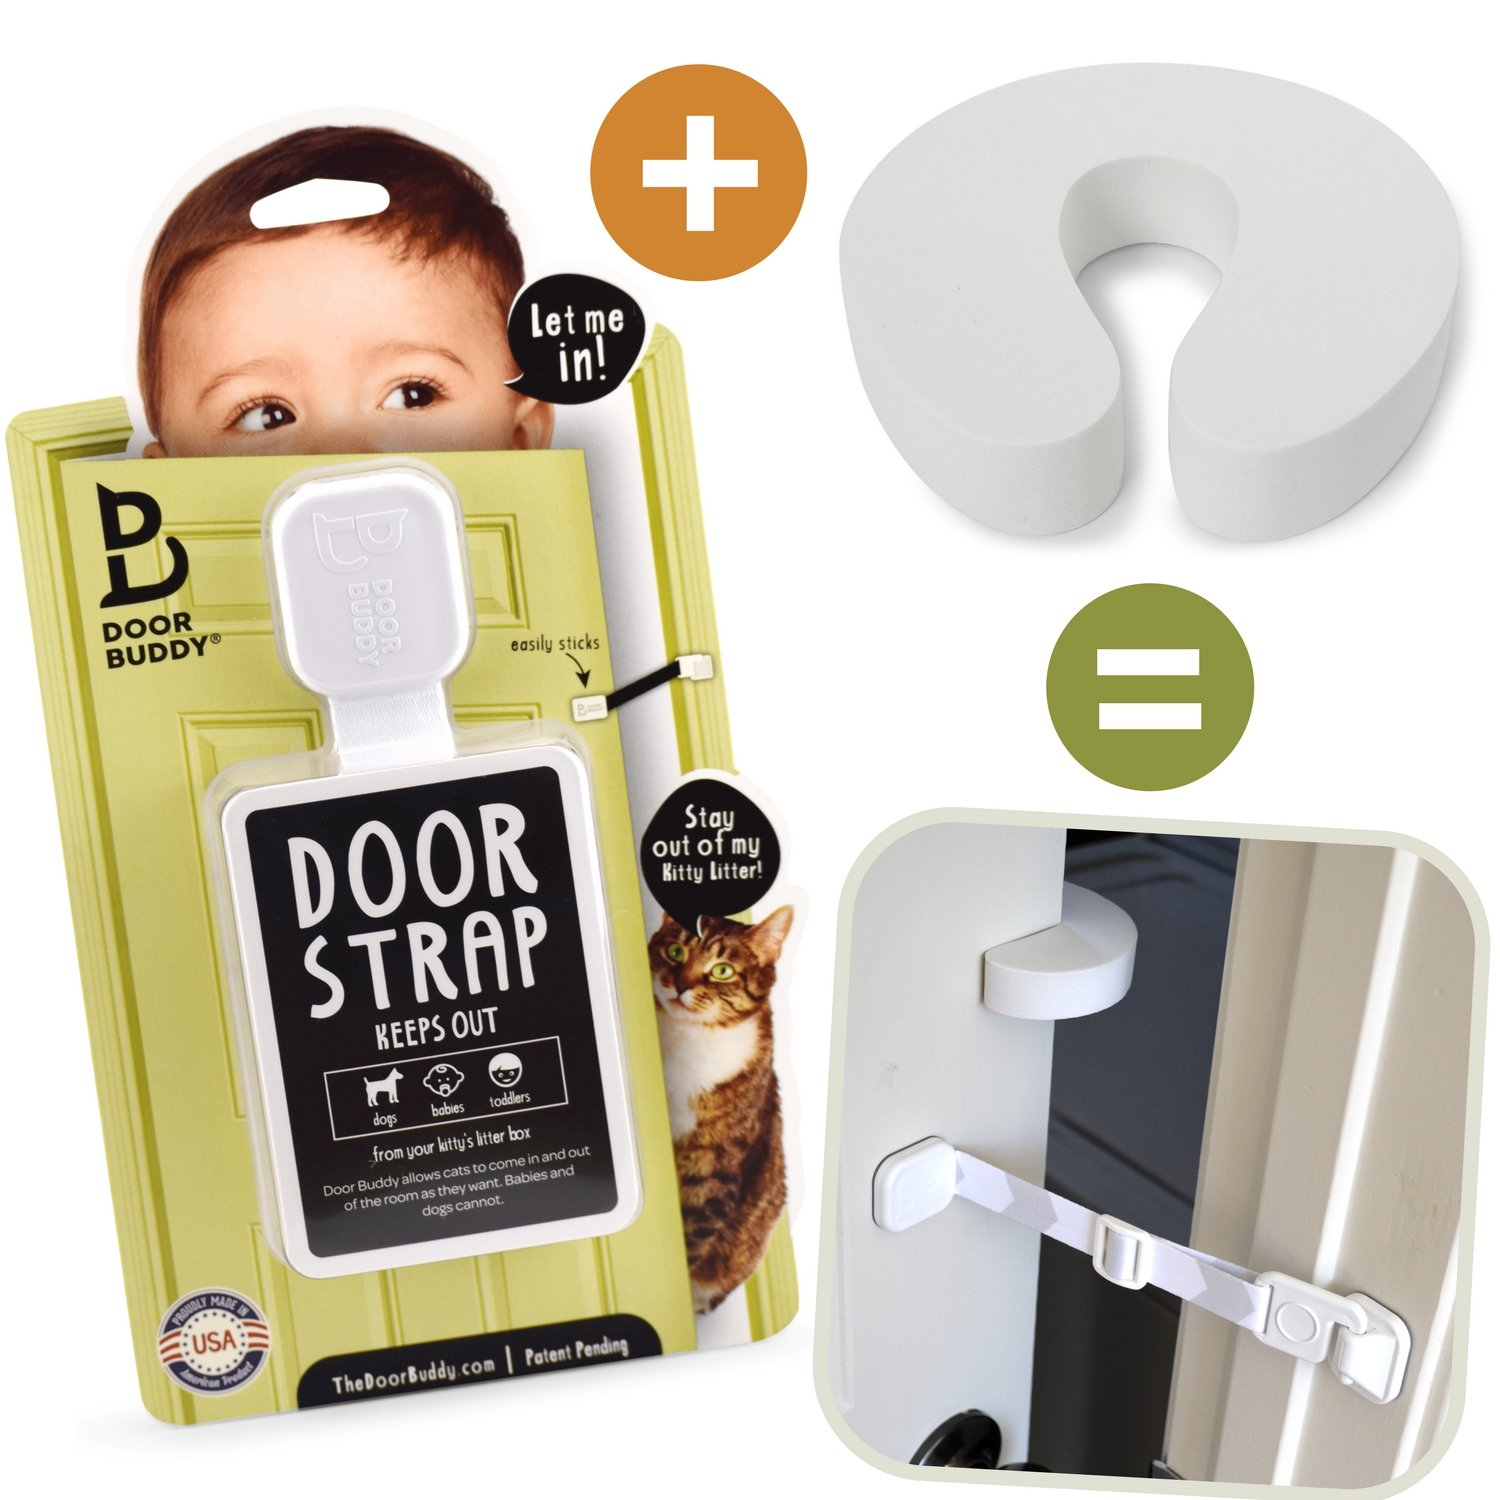 Door Buddy Baby Proof Door Lock Plus Foam Finger Pinch Guard. Keep Baby Out of Room AND Prevent Door From Closing. Cats Enter Easily. No Tools Installation. Easy and Convenient to Use! (Grey) Ultaca DB-BBY-GPGC